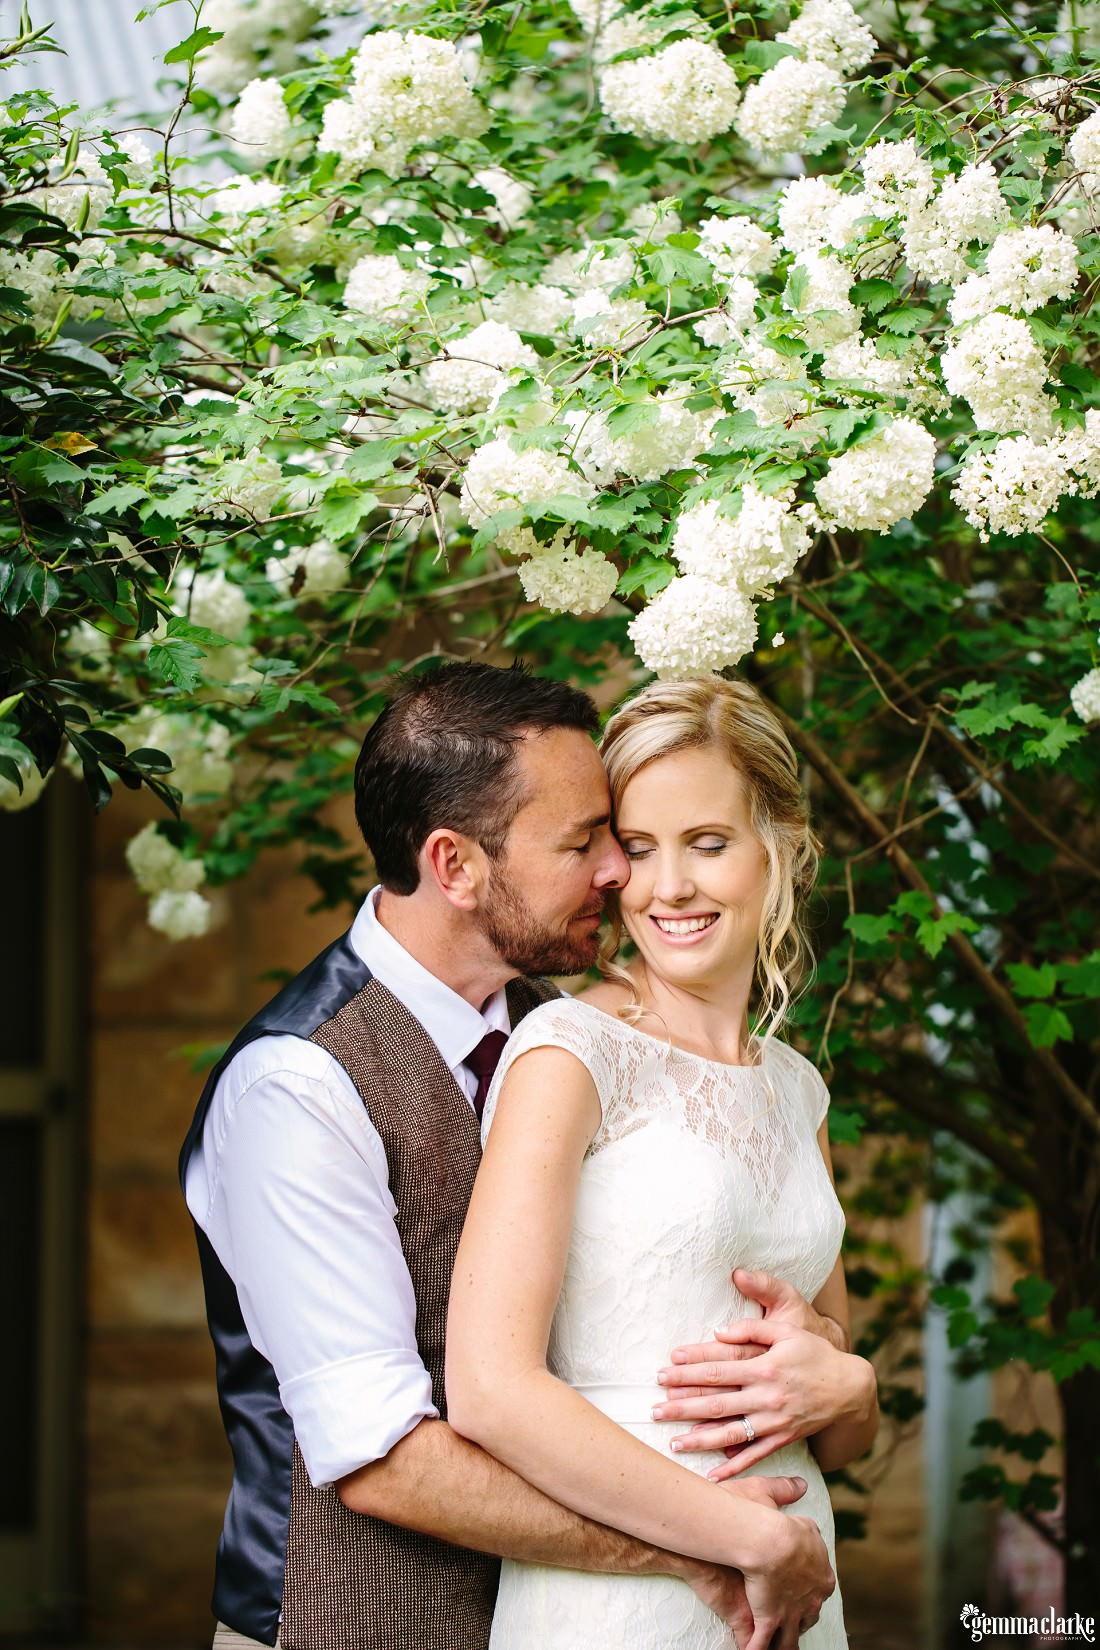 A groom holds his bride close under a tree branch with white flowers